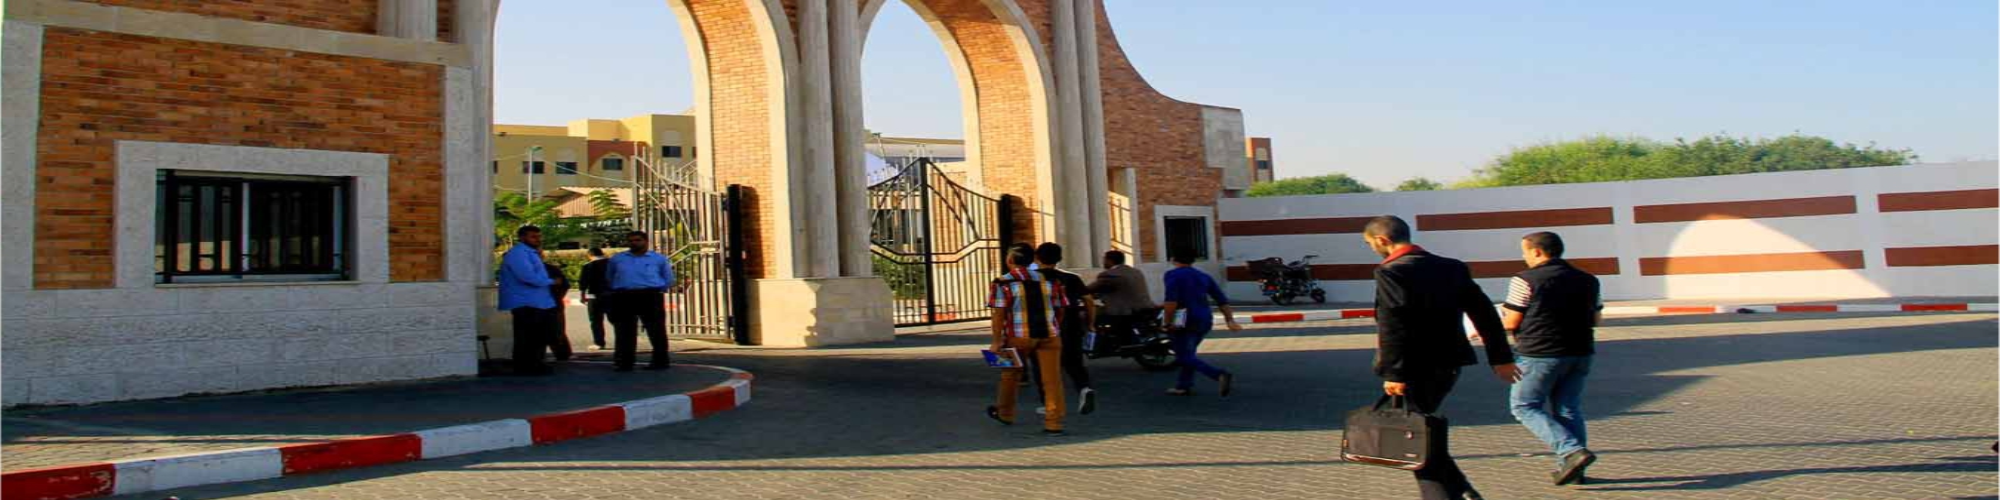 Students Gate- The New Campus